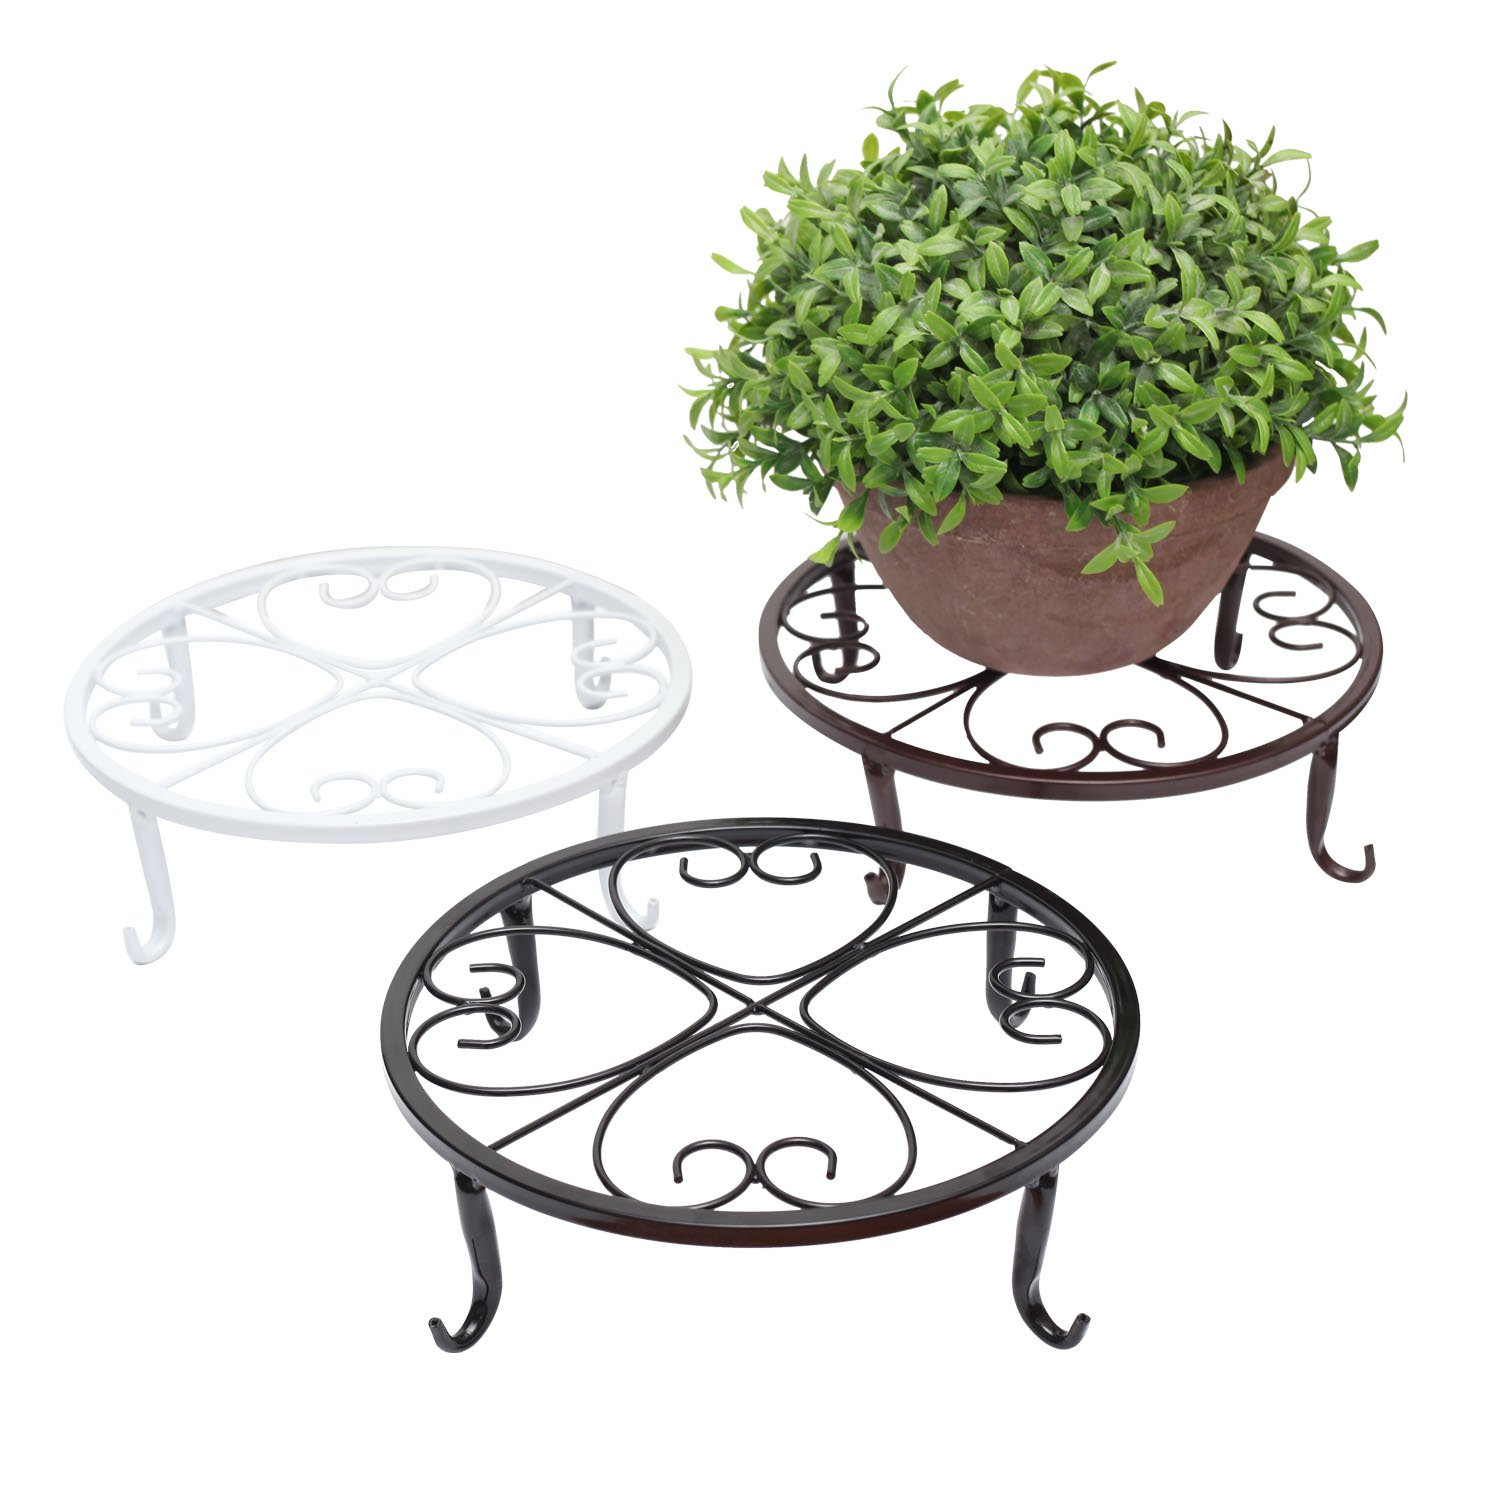 ZUYEE Plants Stand Indoor Outdoor Wrought Iron Planter Trivet Stand Sturdy Flower Pot Supporting Olde Metal / Iron Art , 9.5 Inch, Flowerpot Holder for Garden Studios Pack of 3